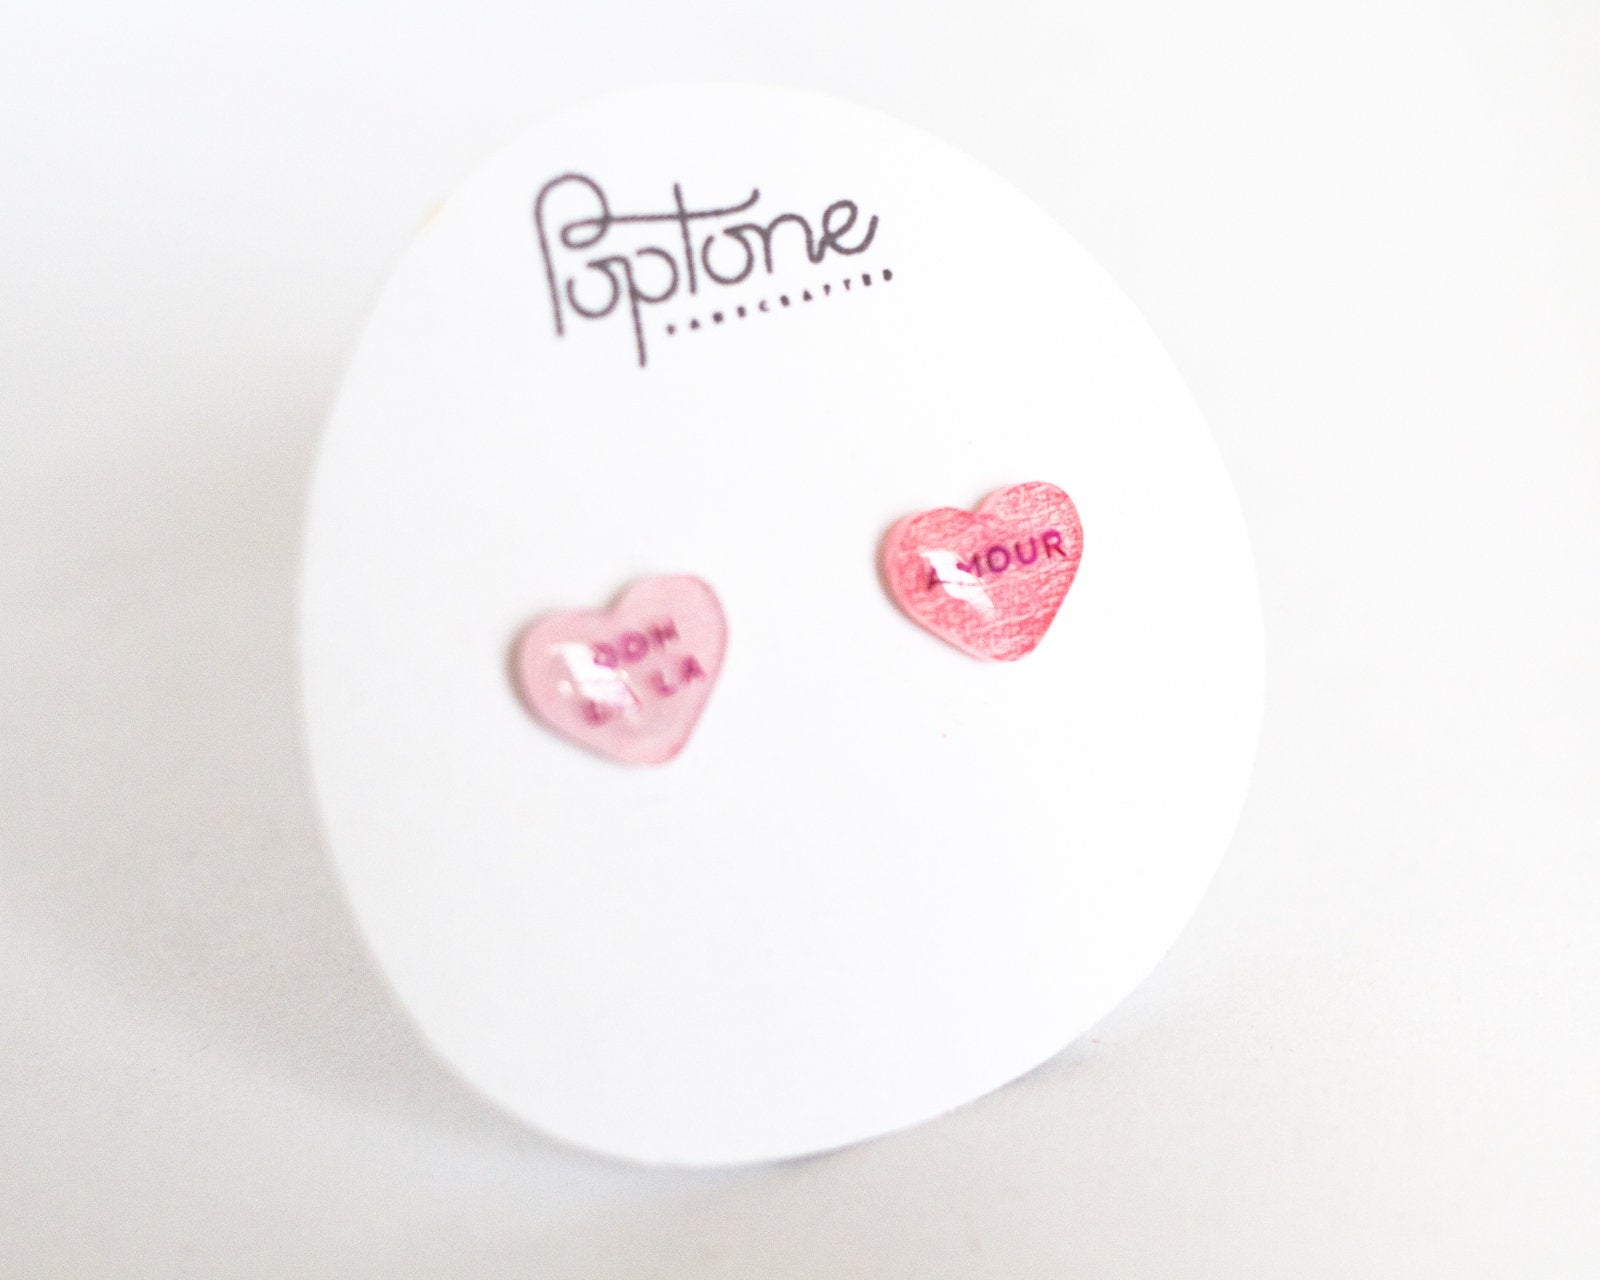 French Candy Valentine Heart Stud Earrings - ooh la la + amour